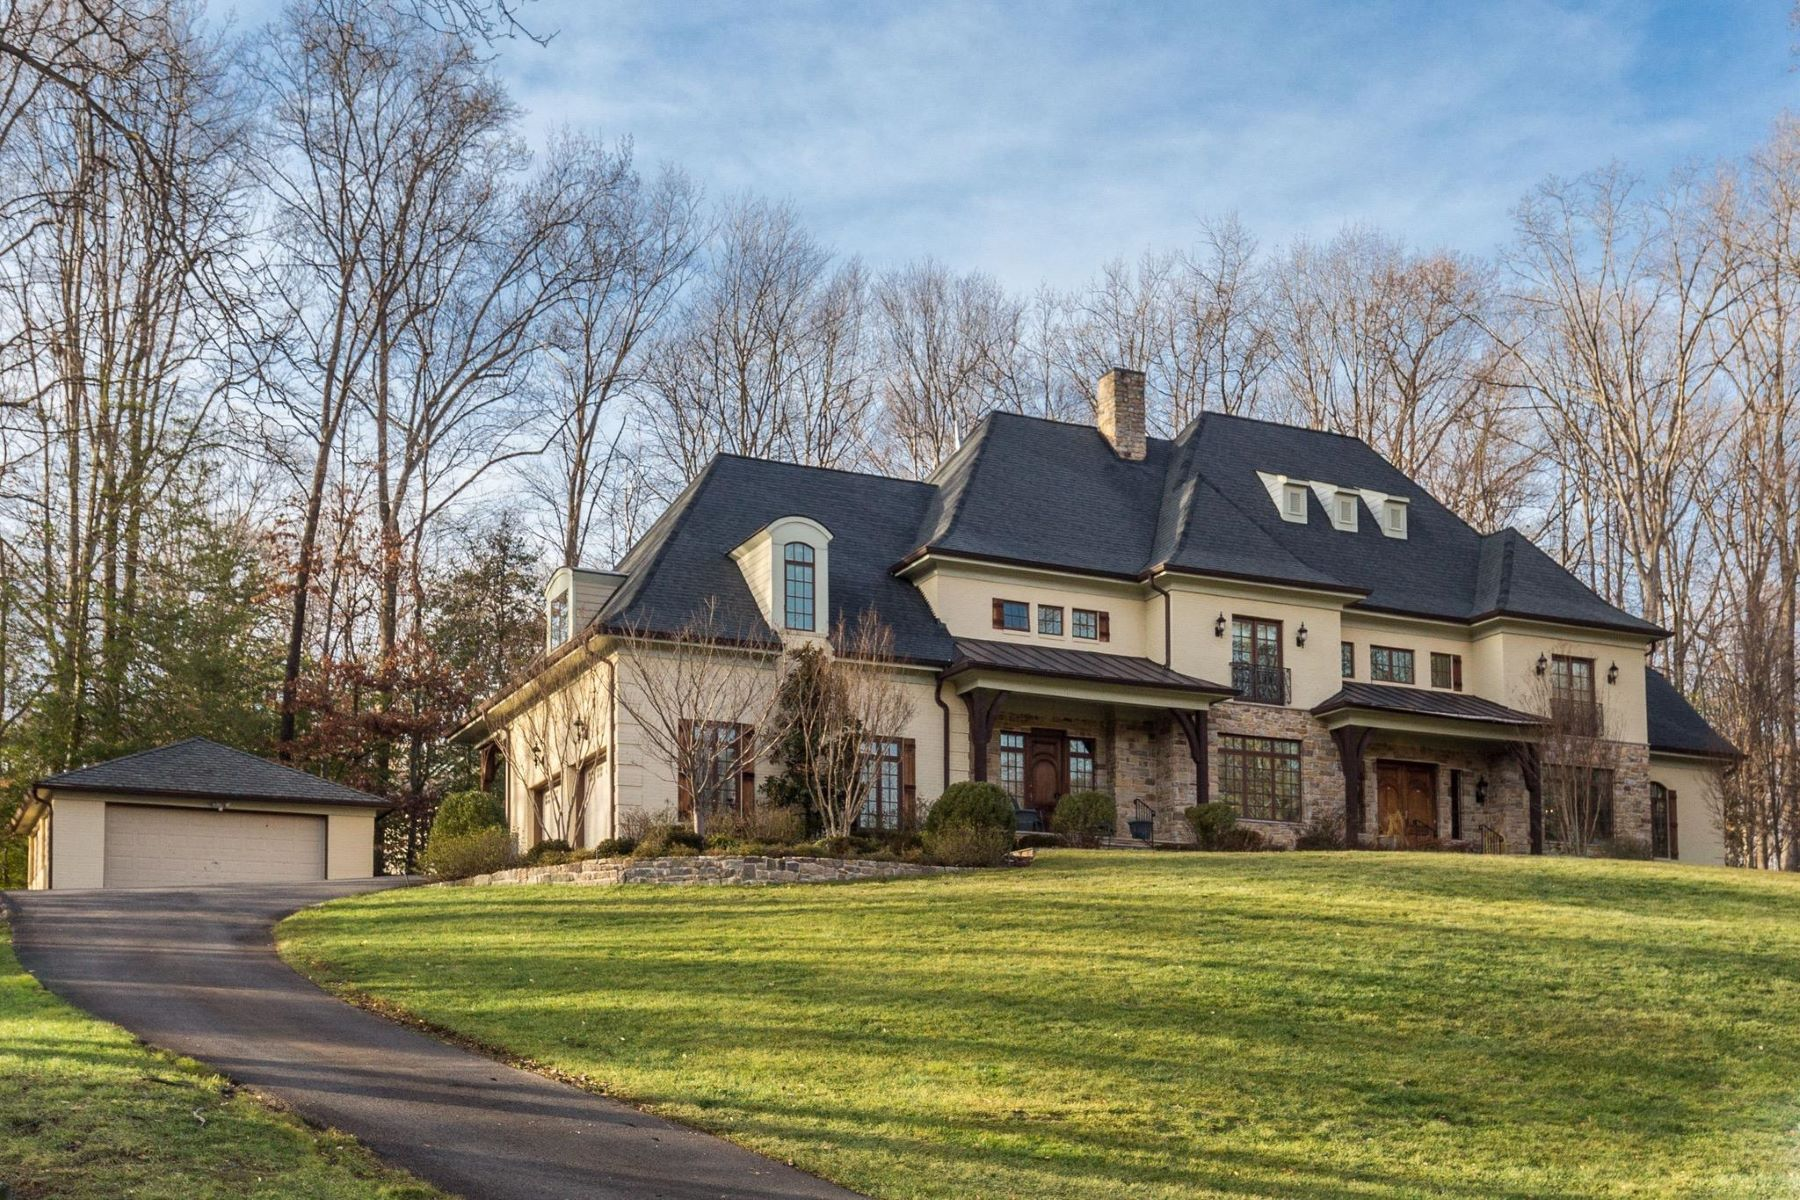 Property for Sale at 7629 Burford Dr McLean, Virginia 22102 United States